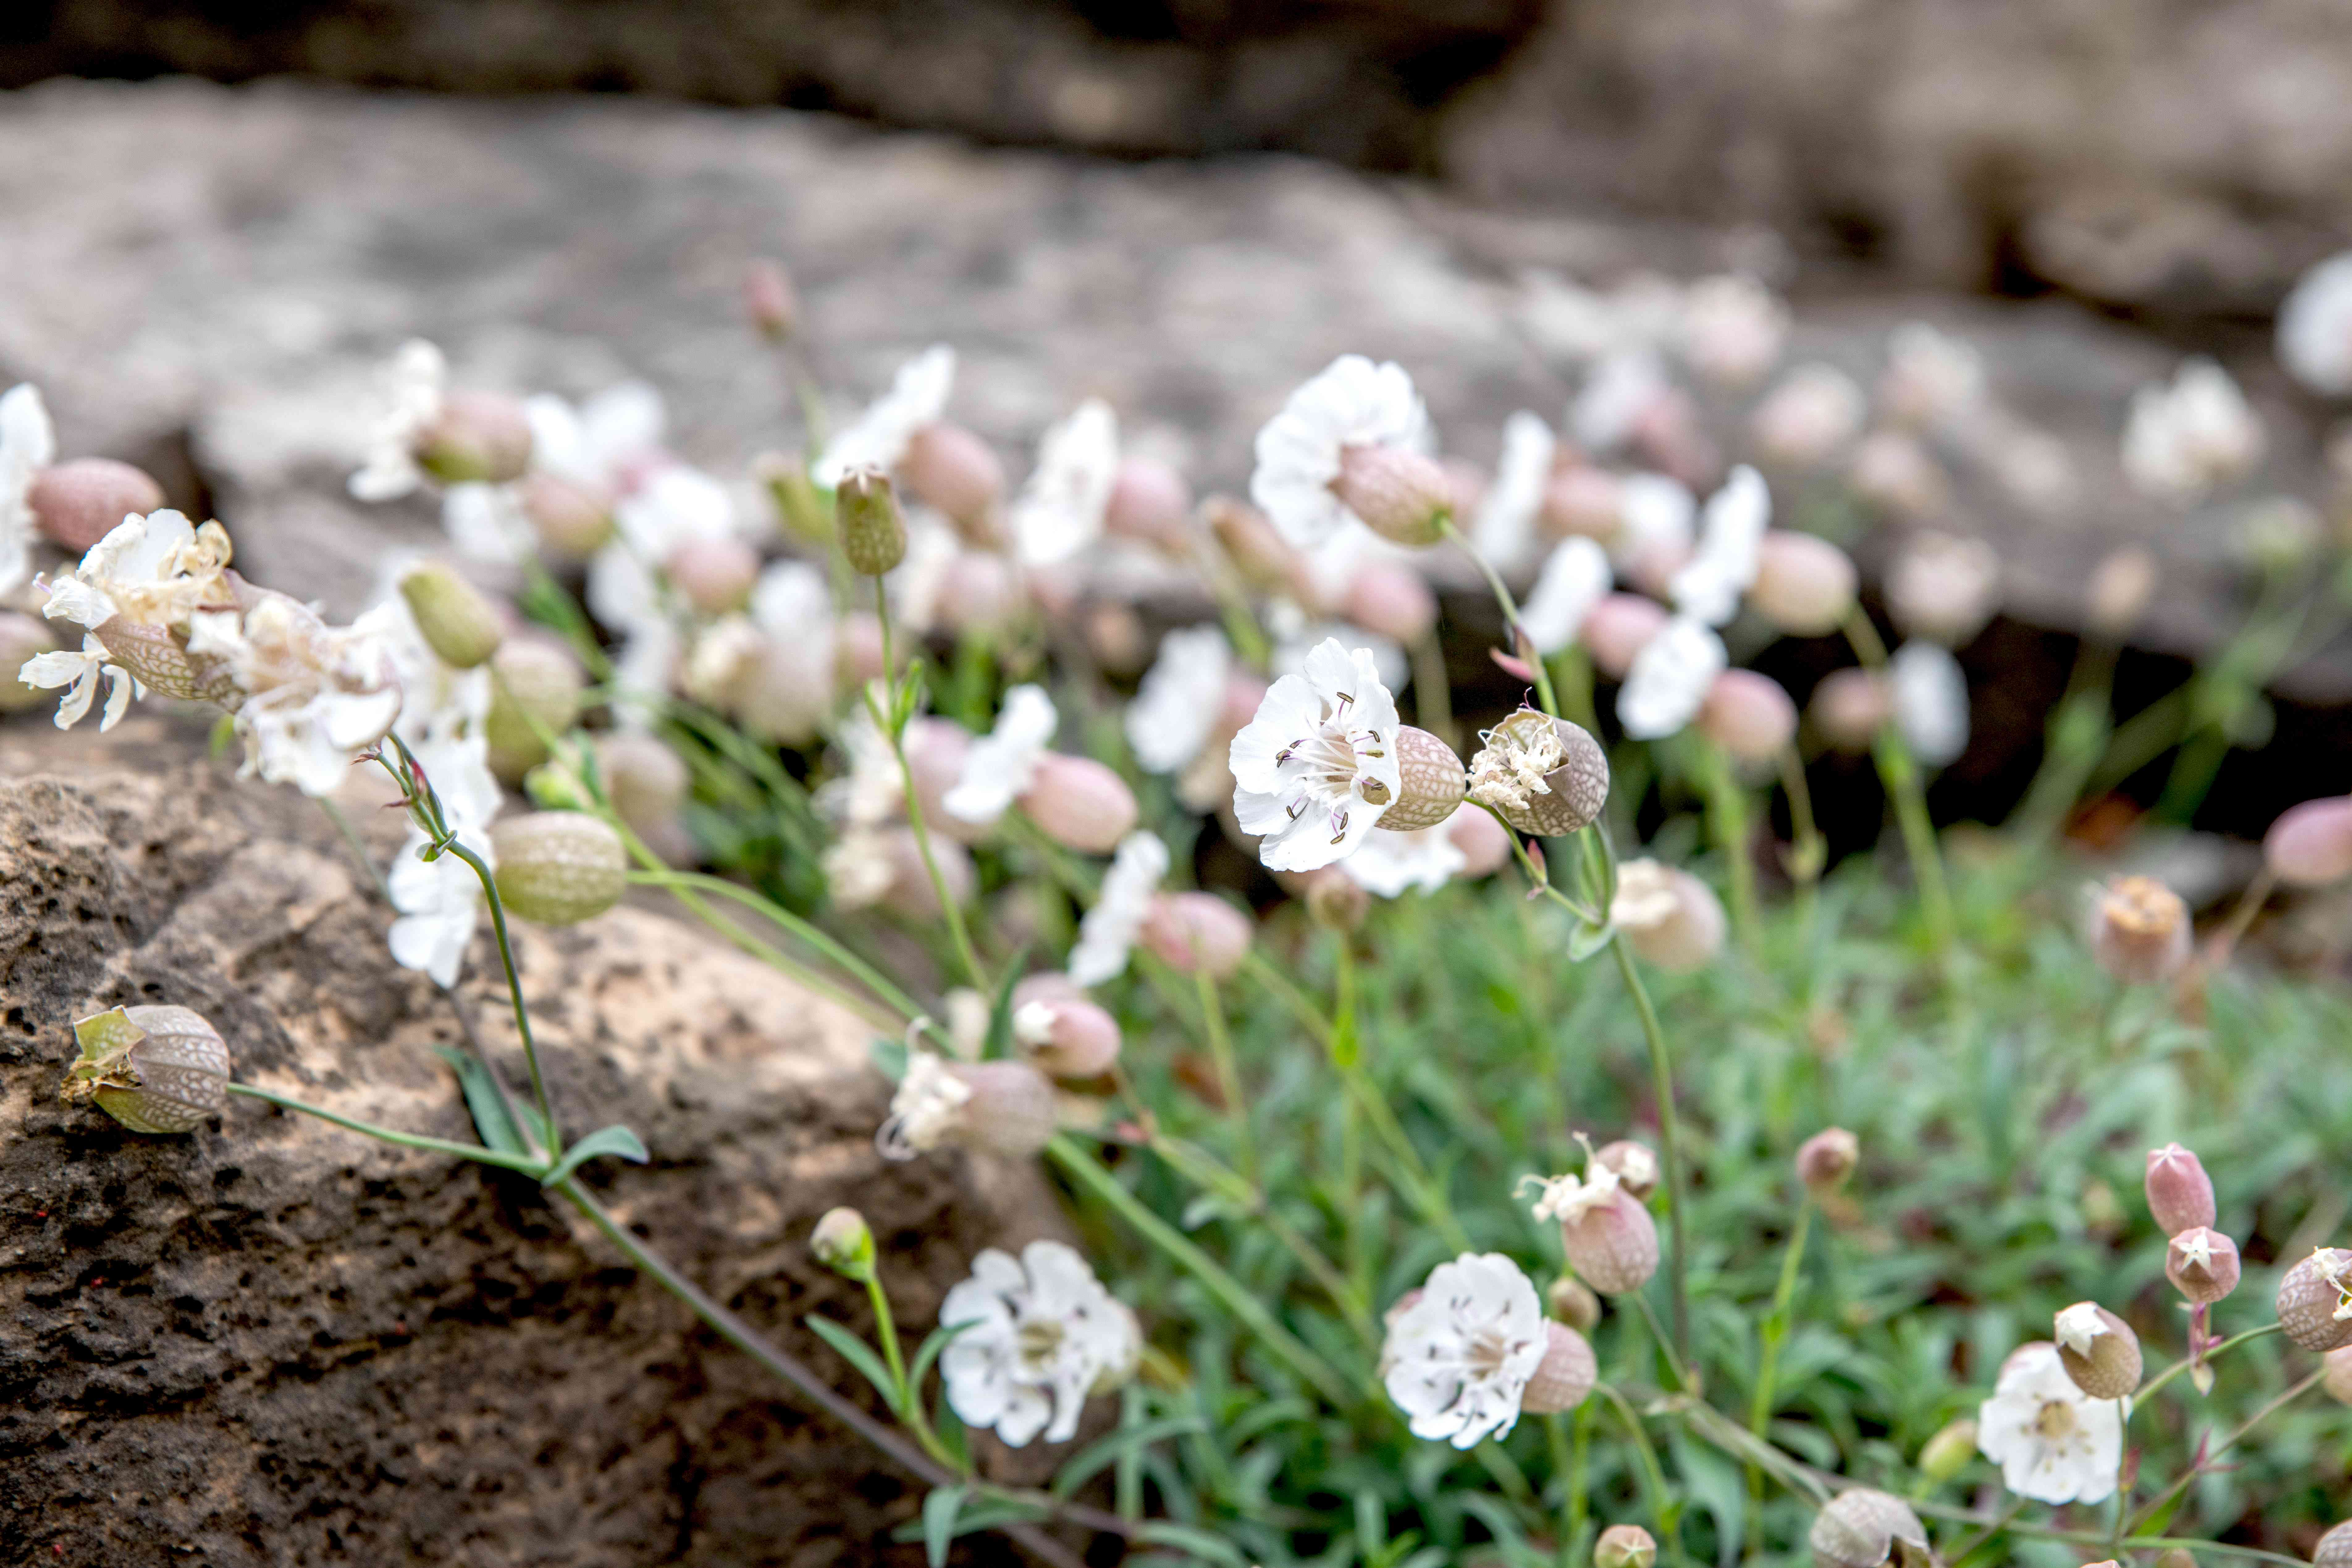 Silene plants with small white flowers on thin stems near rocks